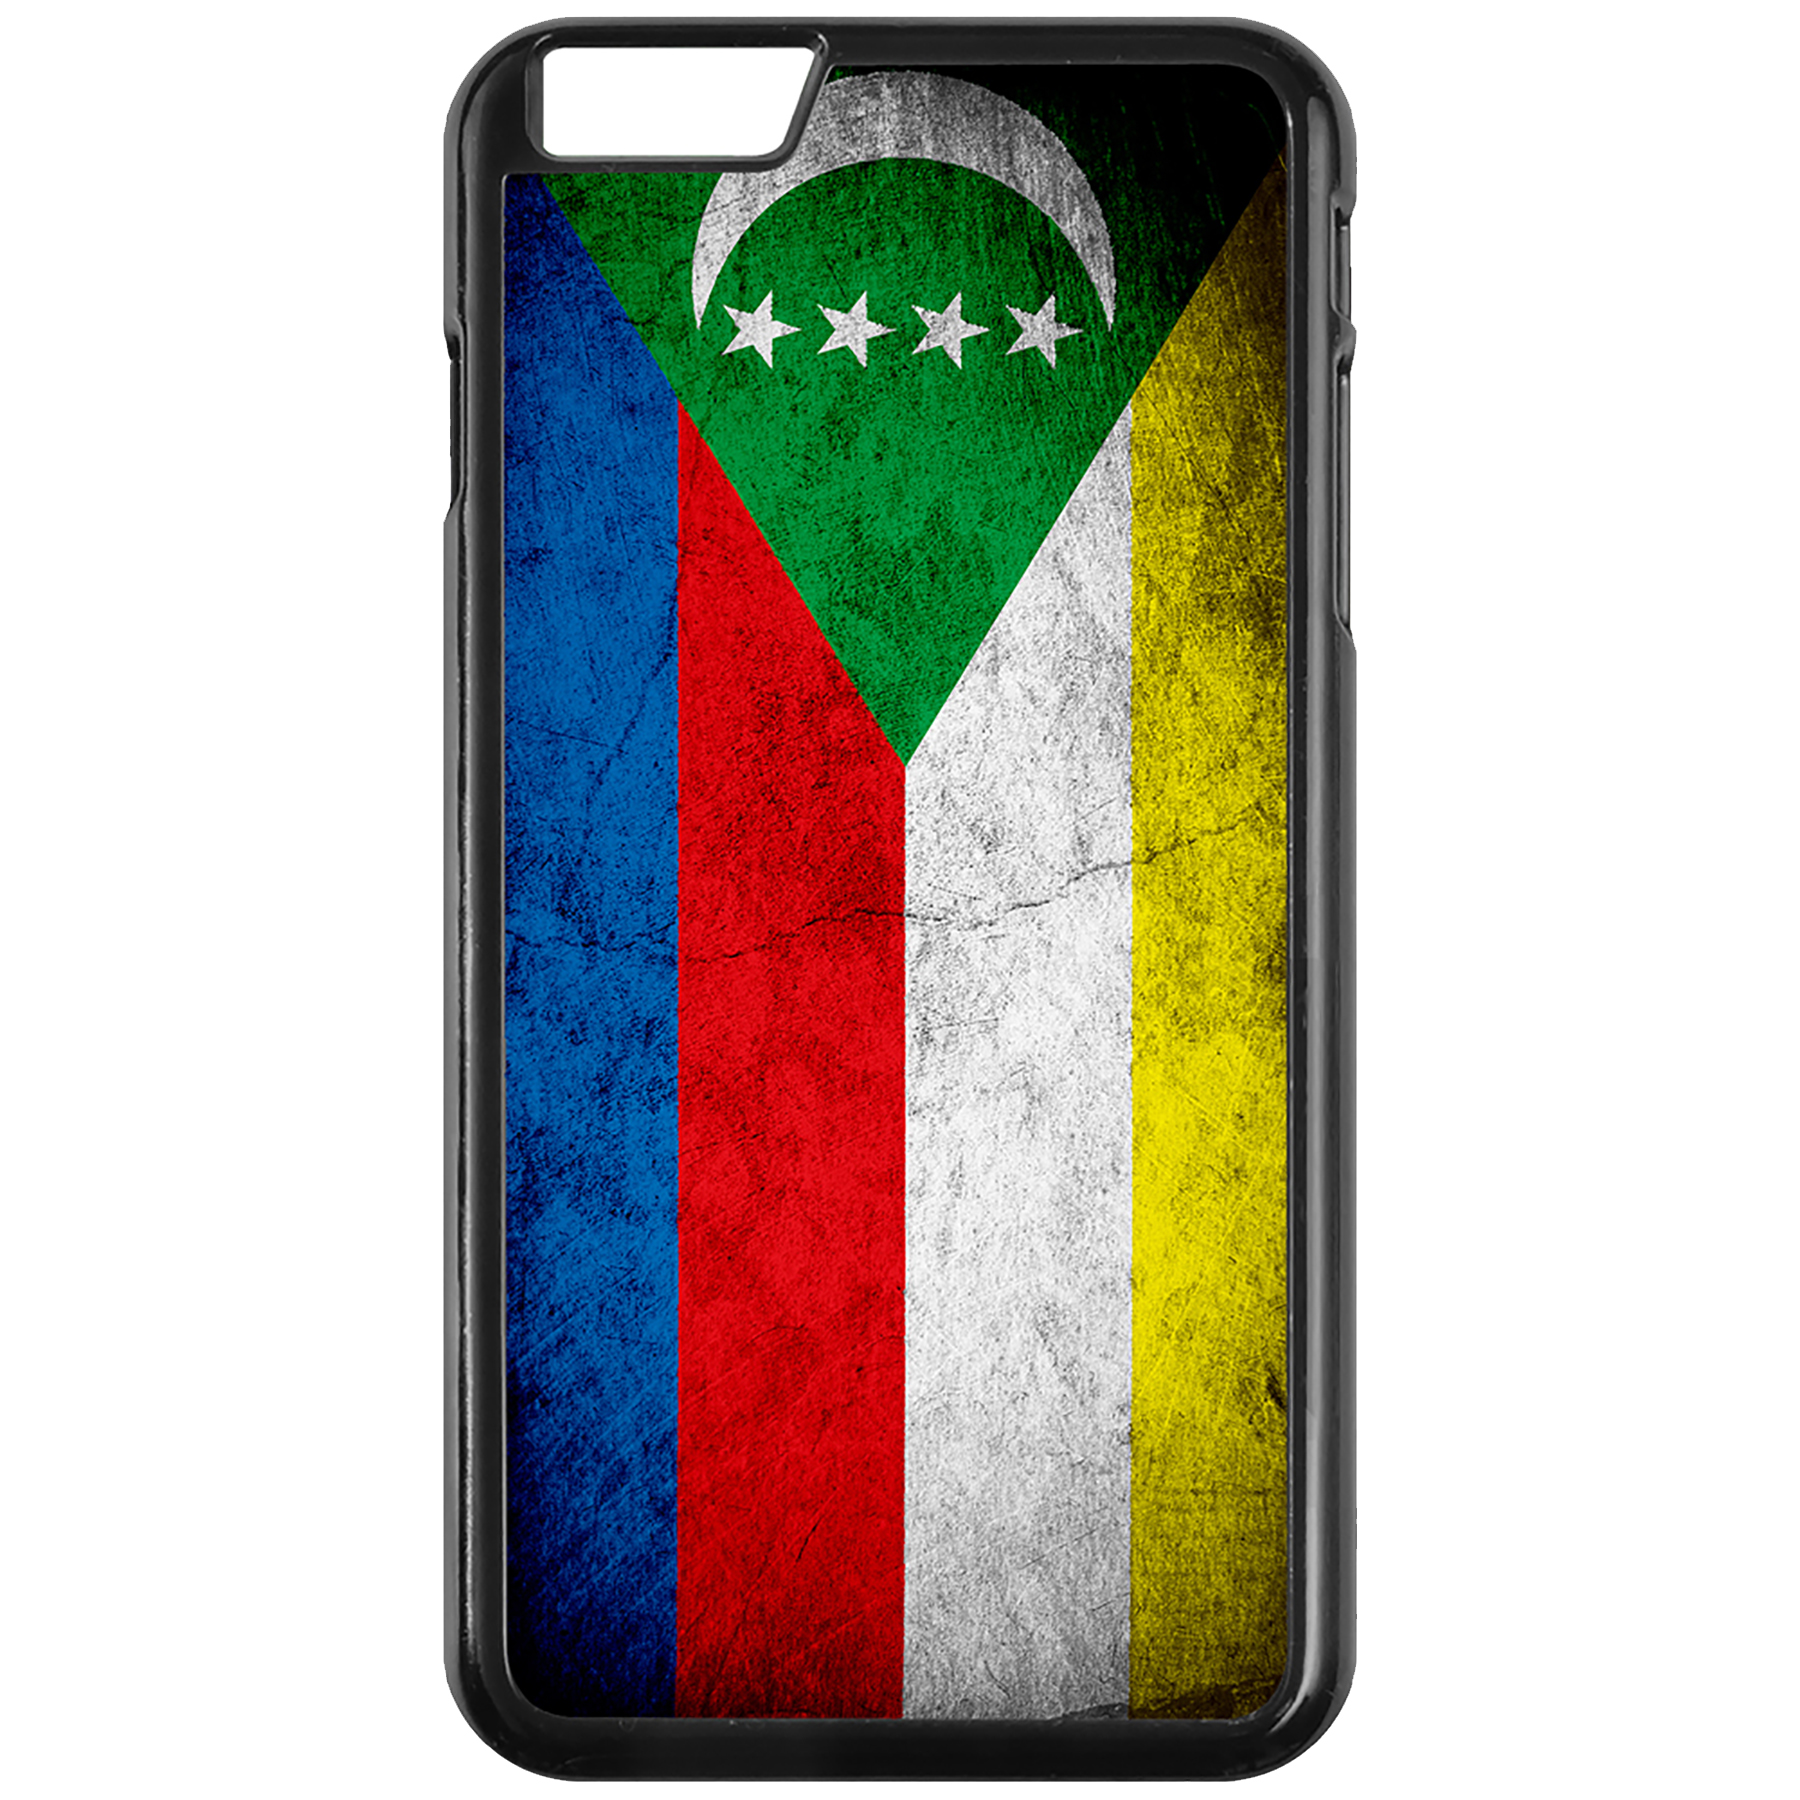 Apple-iPhone-Case-with-Flag-of-Comoros-Comorian-Many-Design-Options thumbnail 74